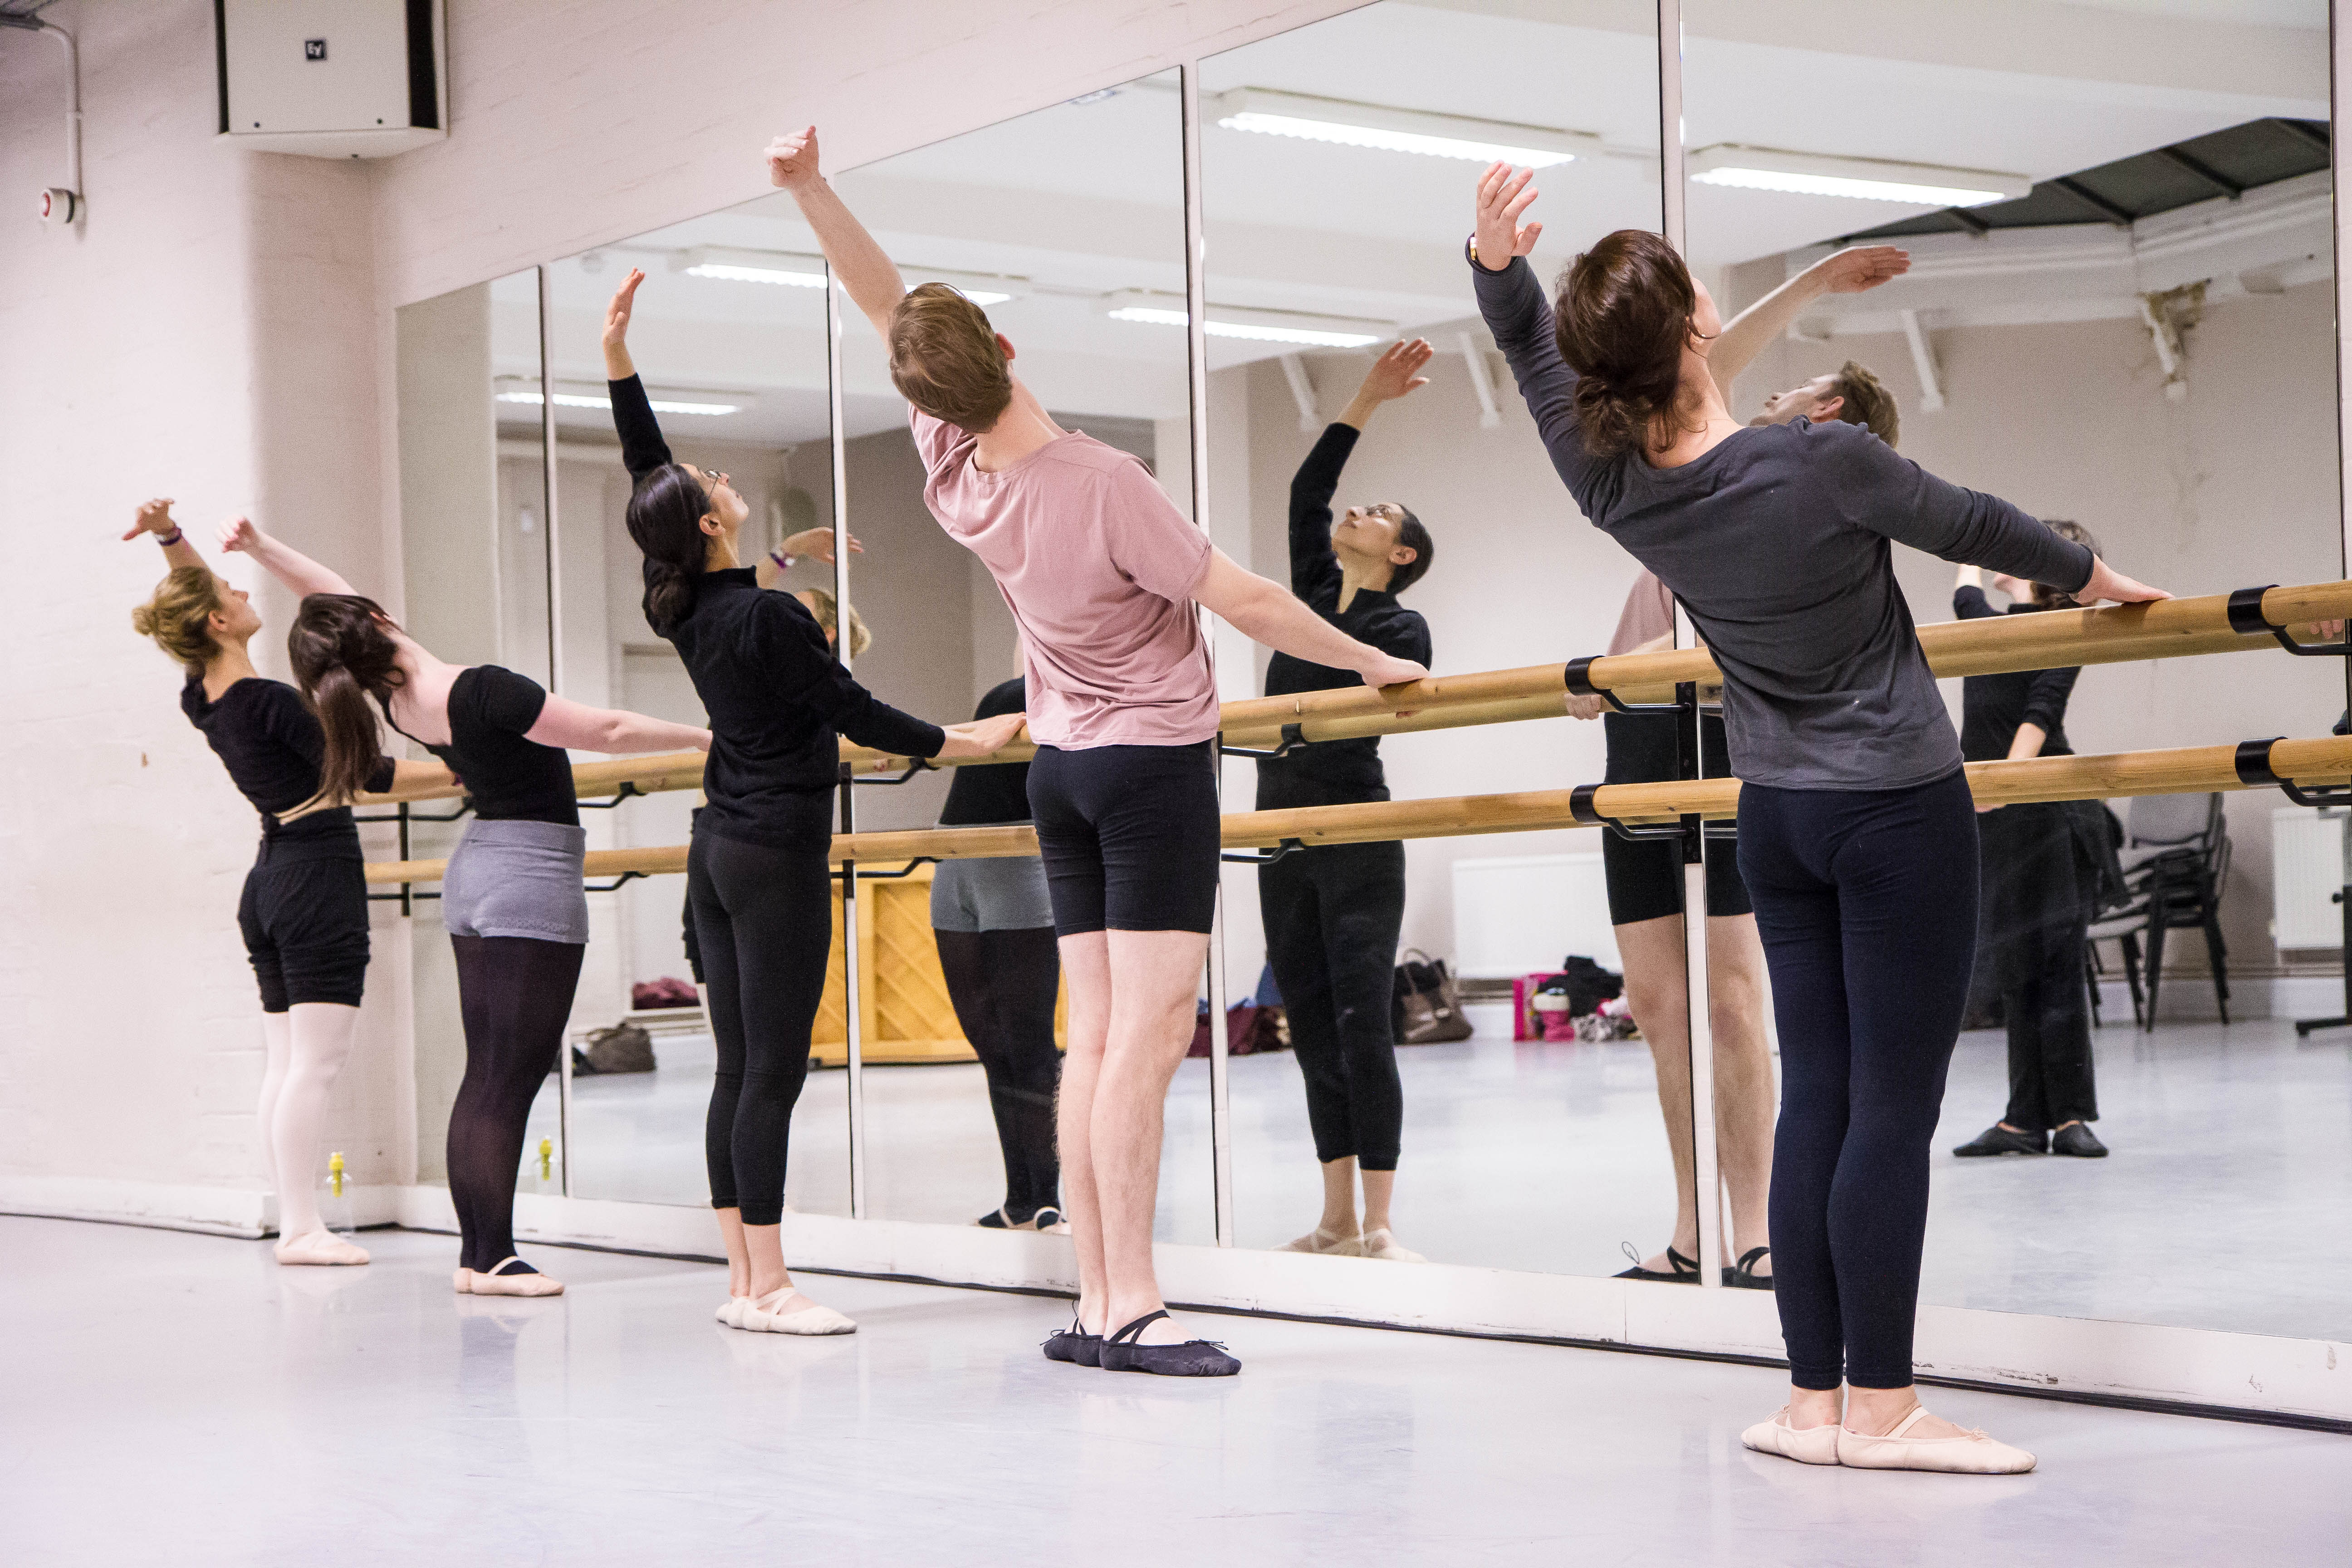 A ballet class practicing at the barre in one of our Beginner classes.